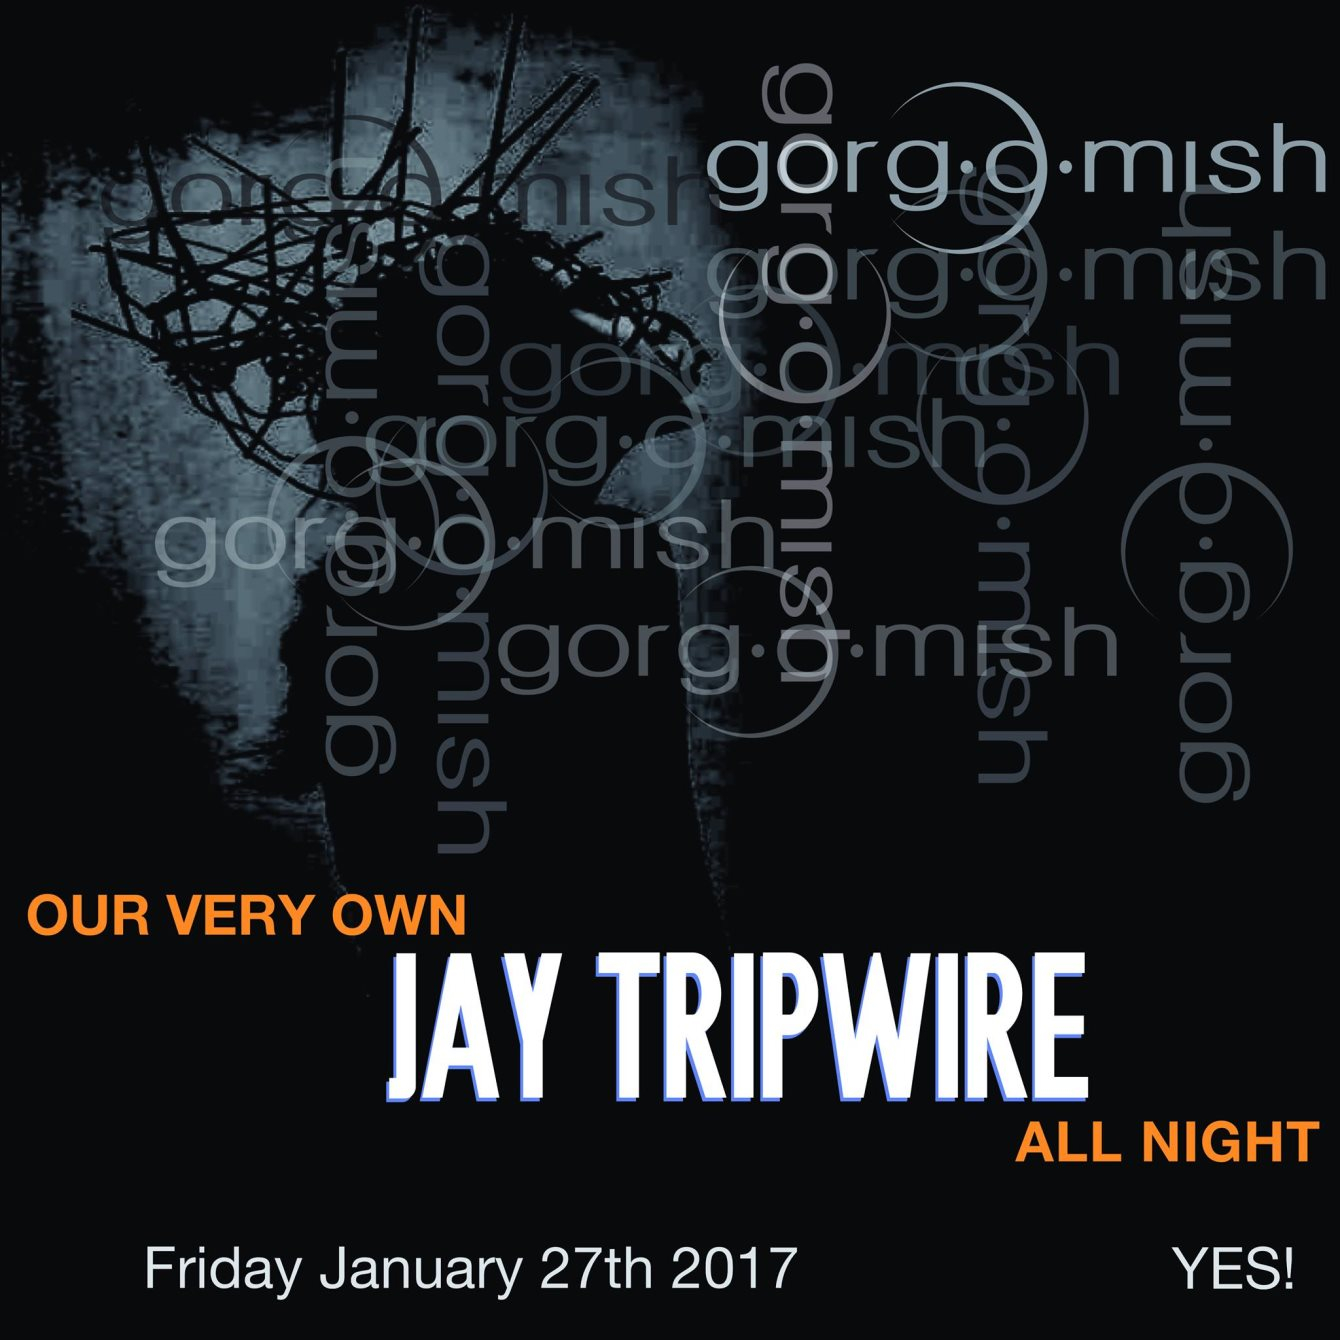 Ra Jay Tripwire All Nighter At Gorg O Mish Vancouver 2017